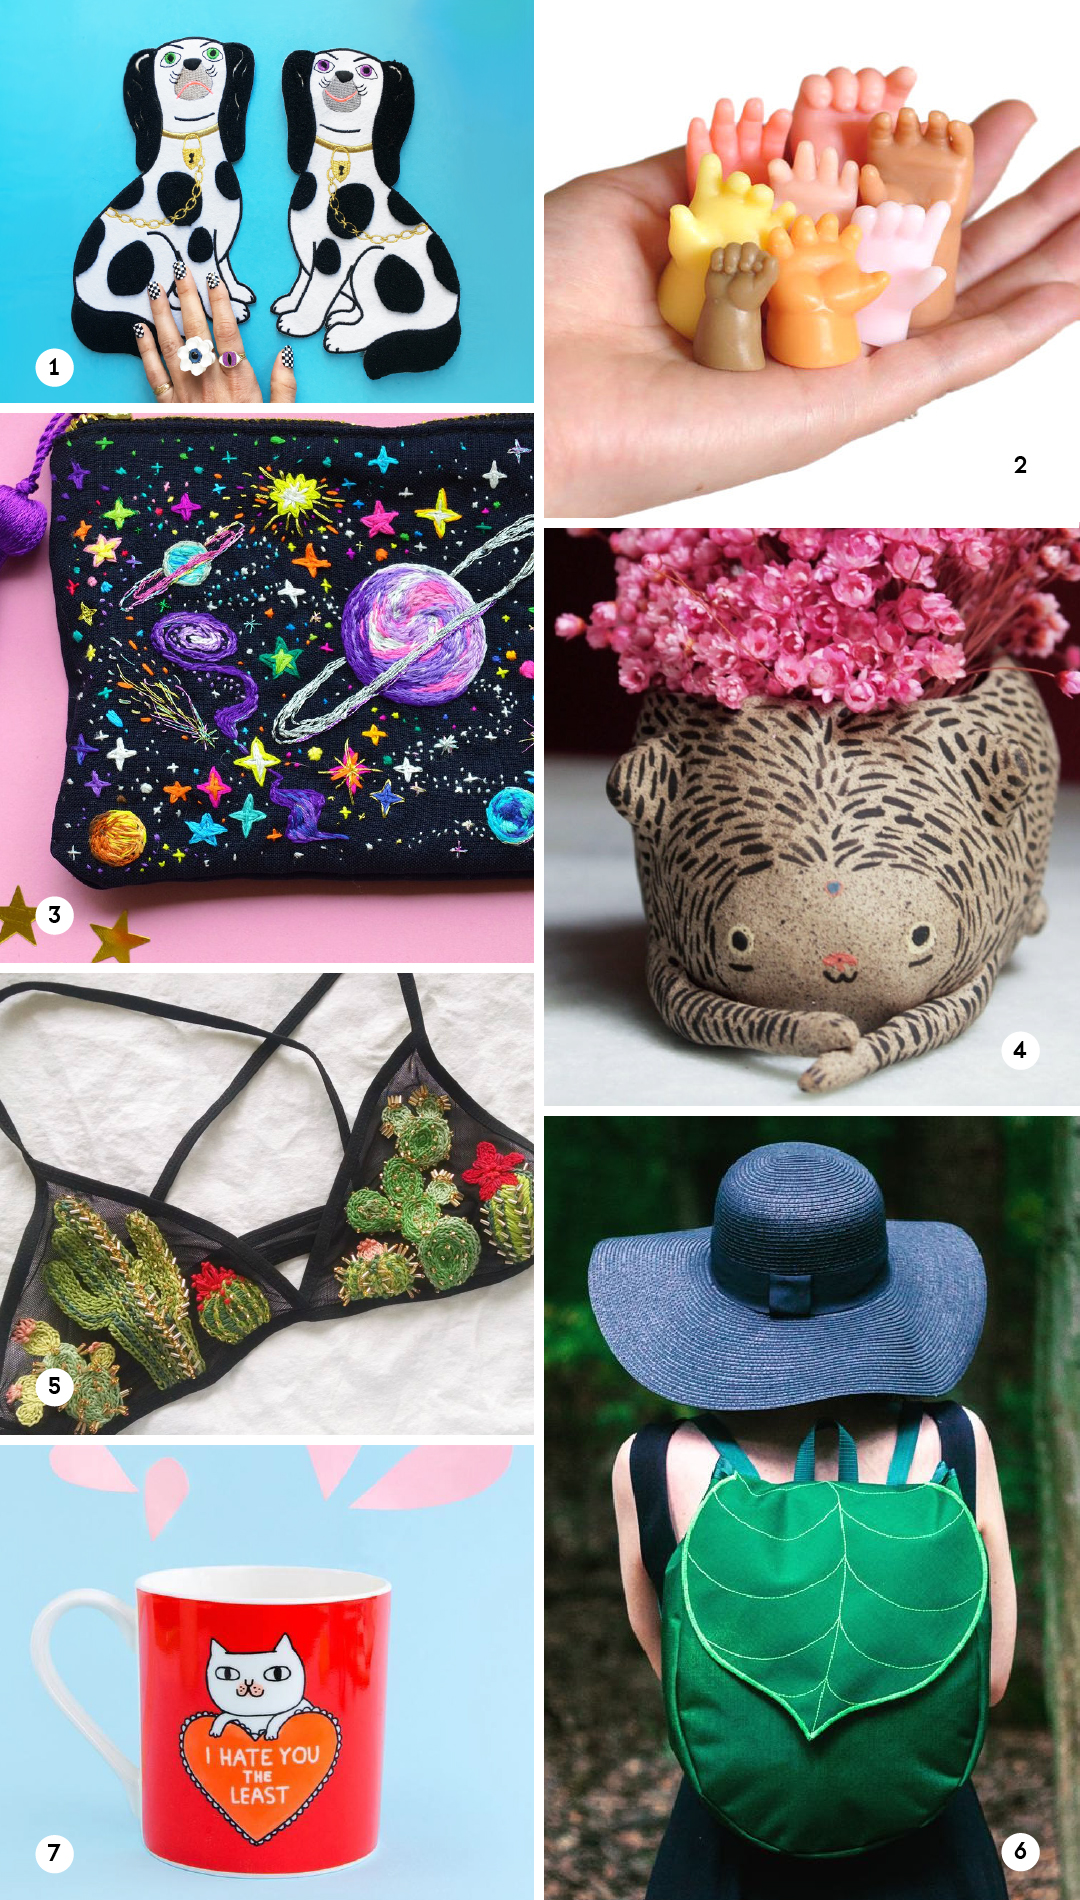 Creative Products, June 30